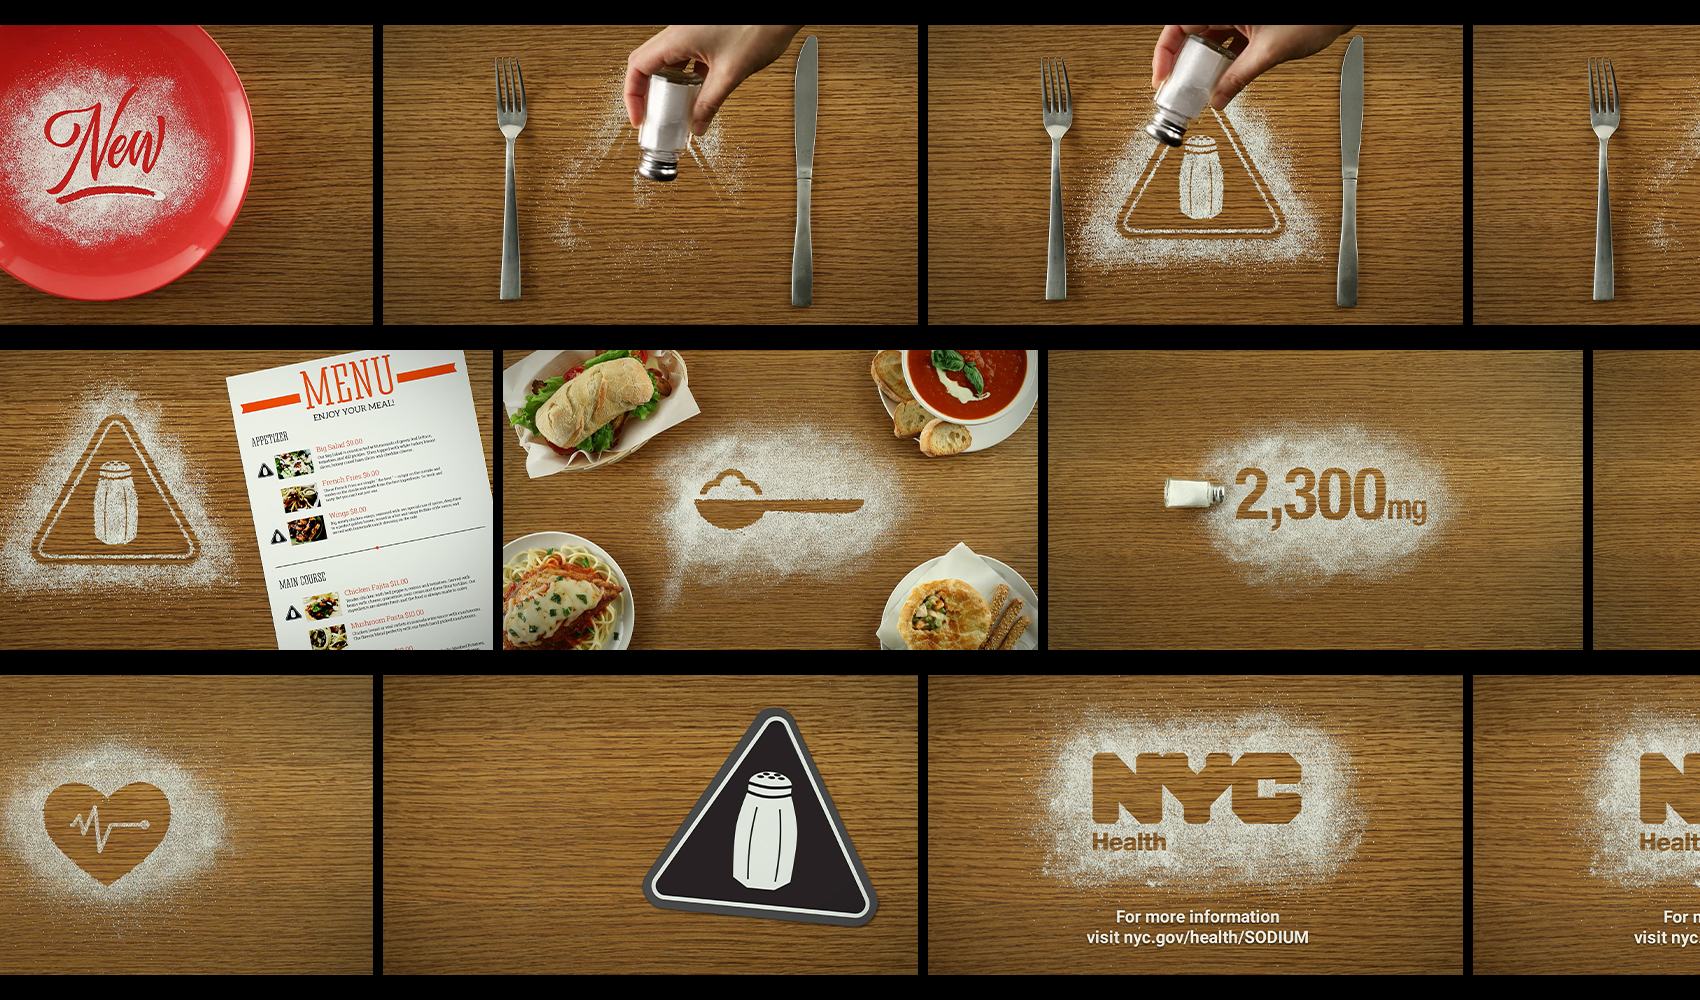 NYC DOH Sodium Warning Campaign - Case Study 02